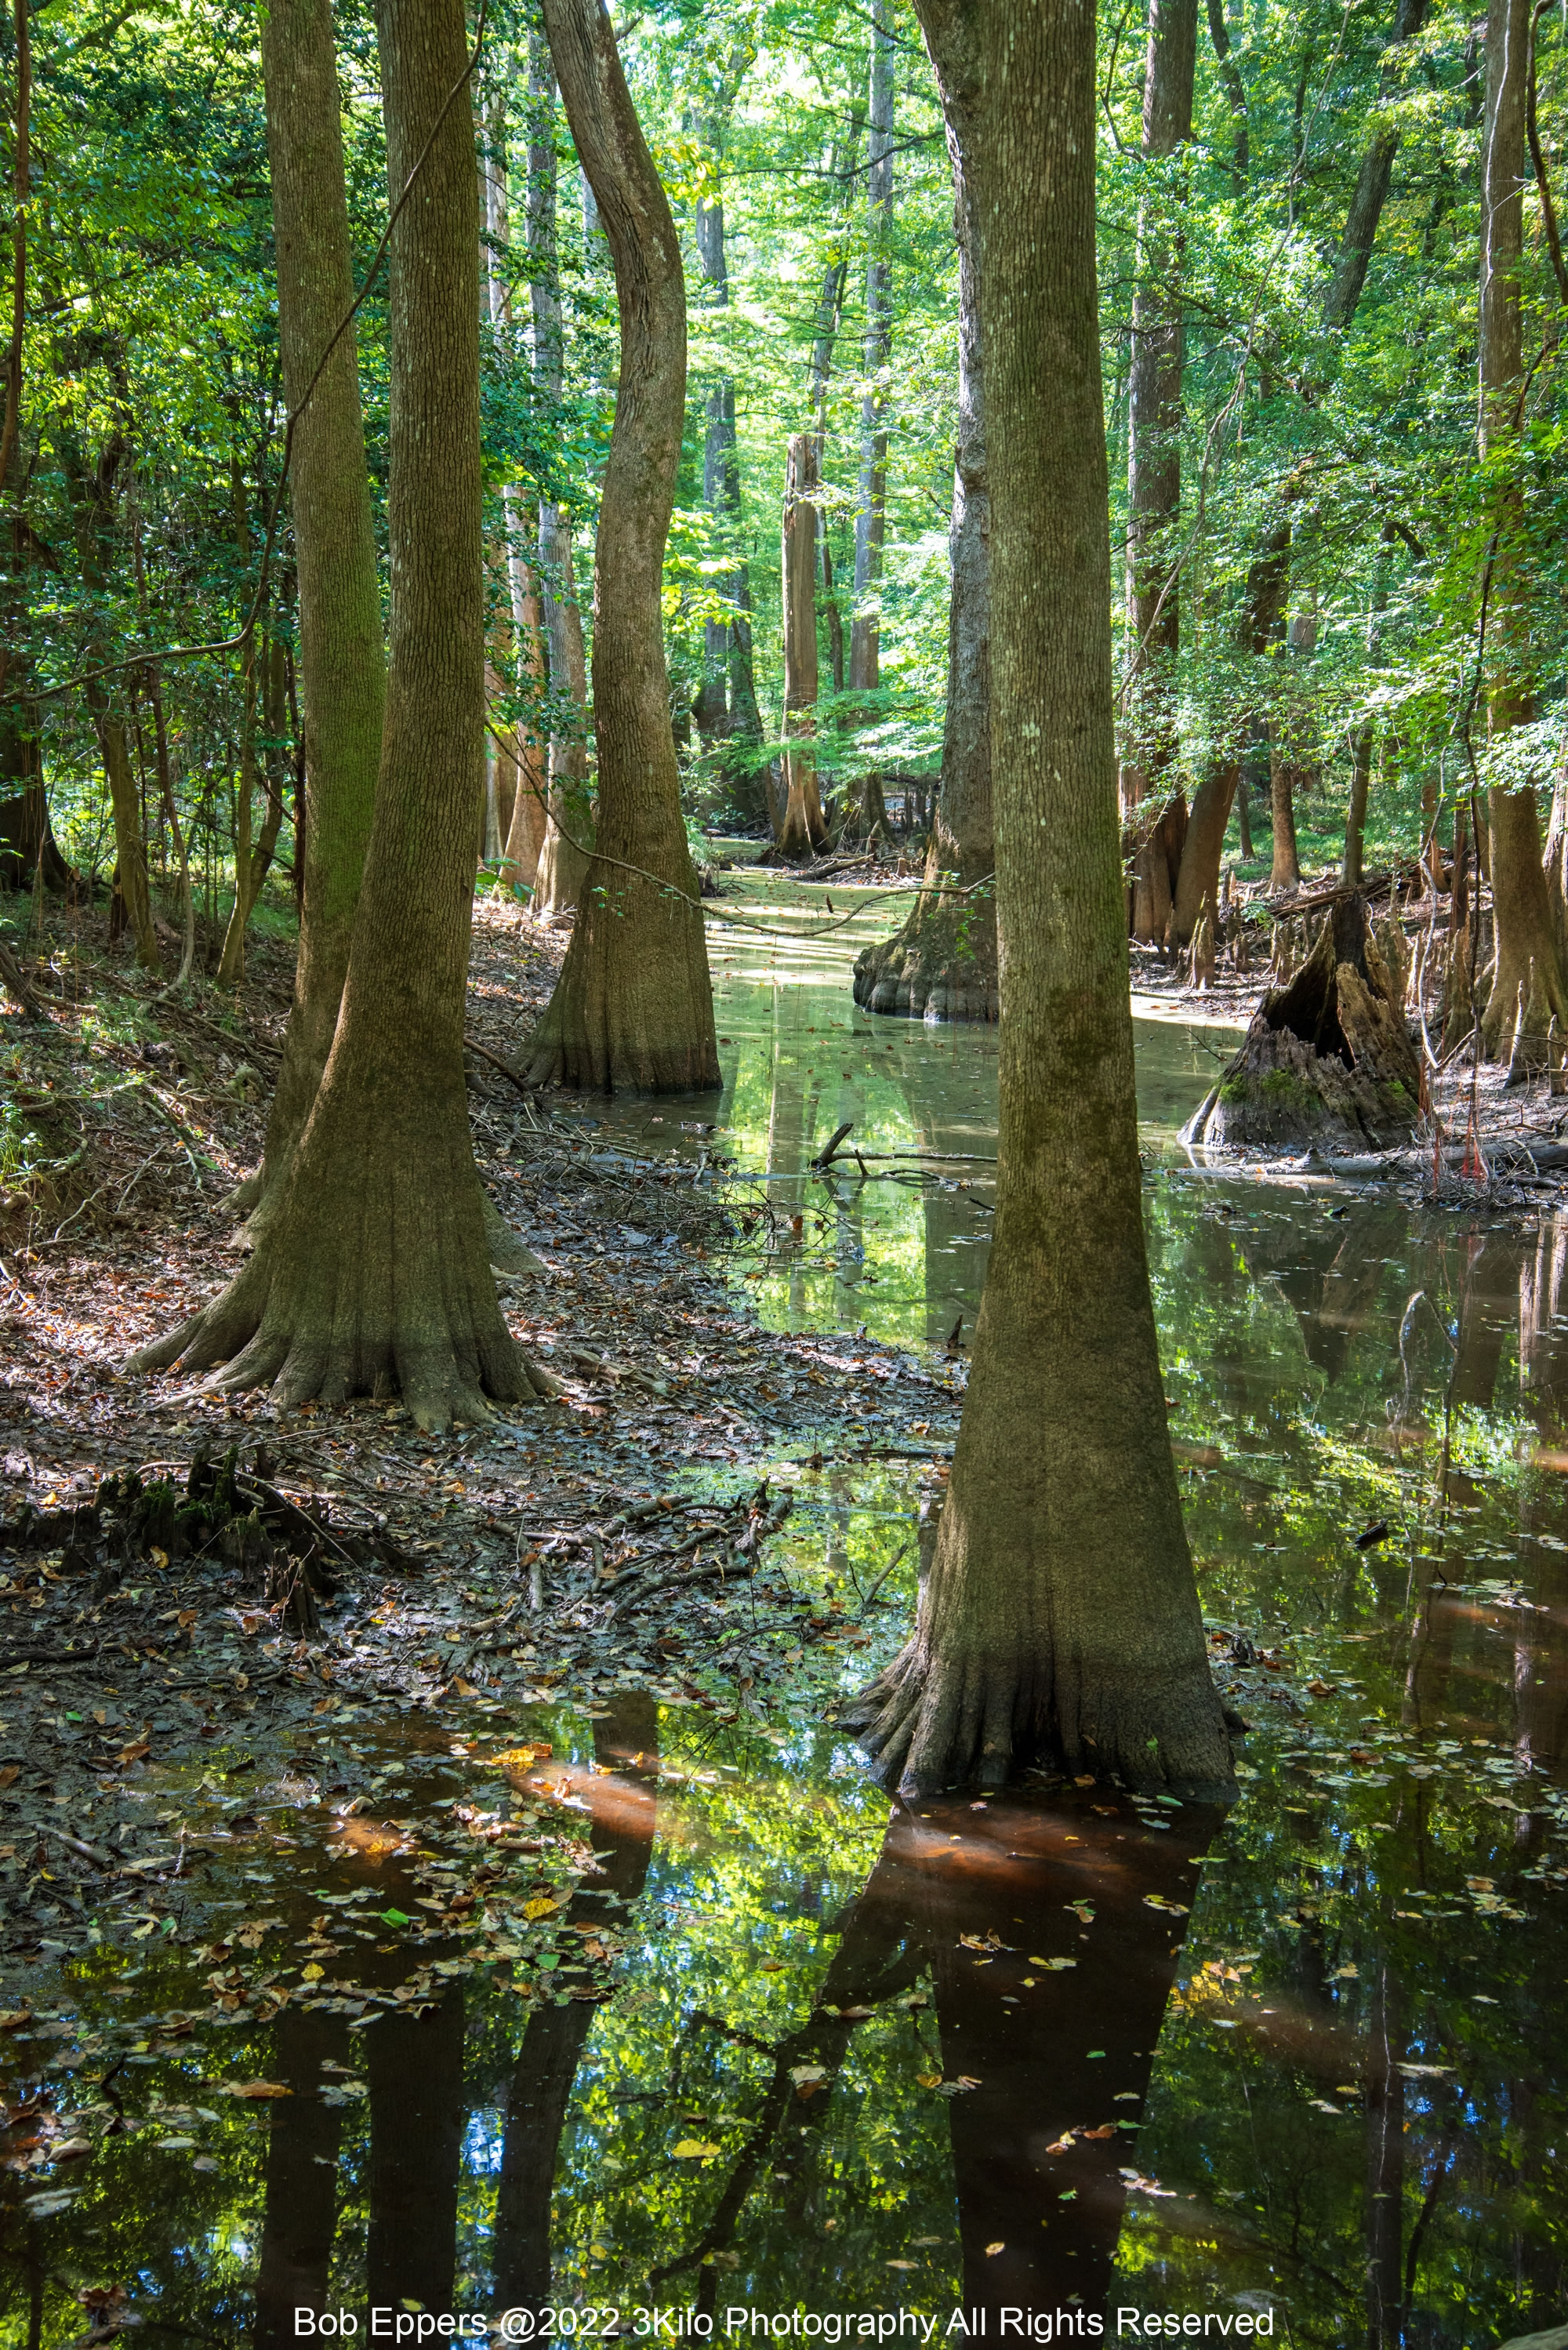 Photo of the Hardwood Cypress Trees and Reflections at the Congaree NP in SC